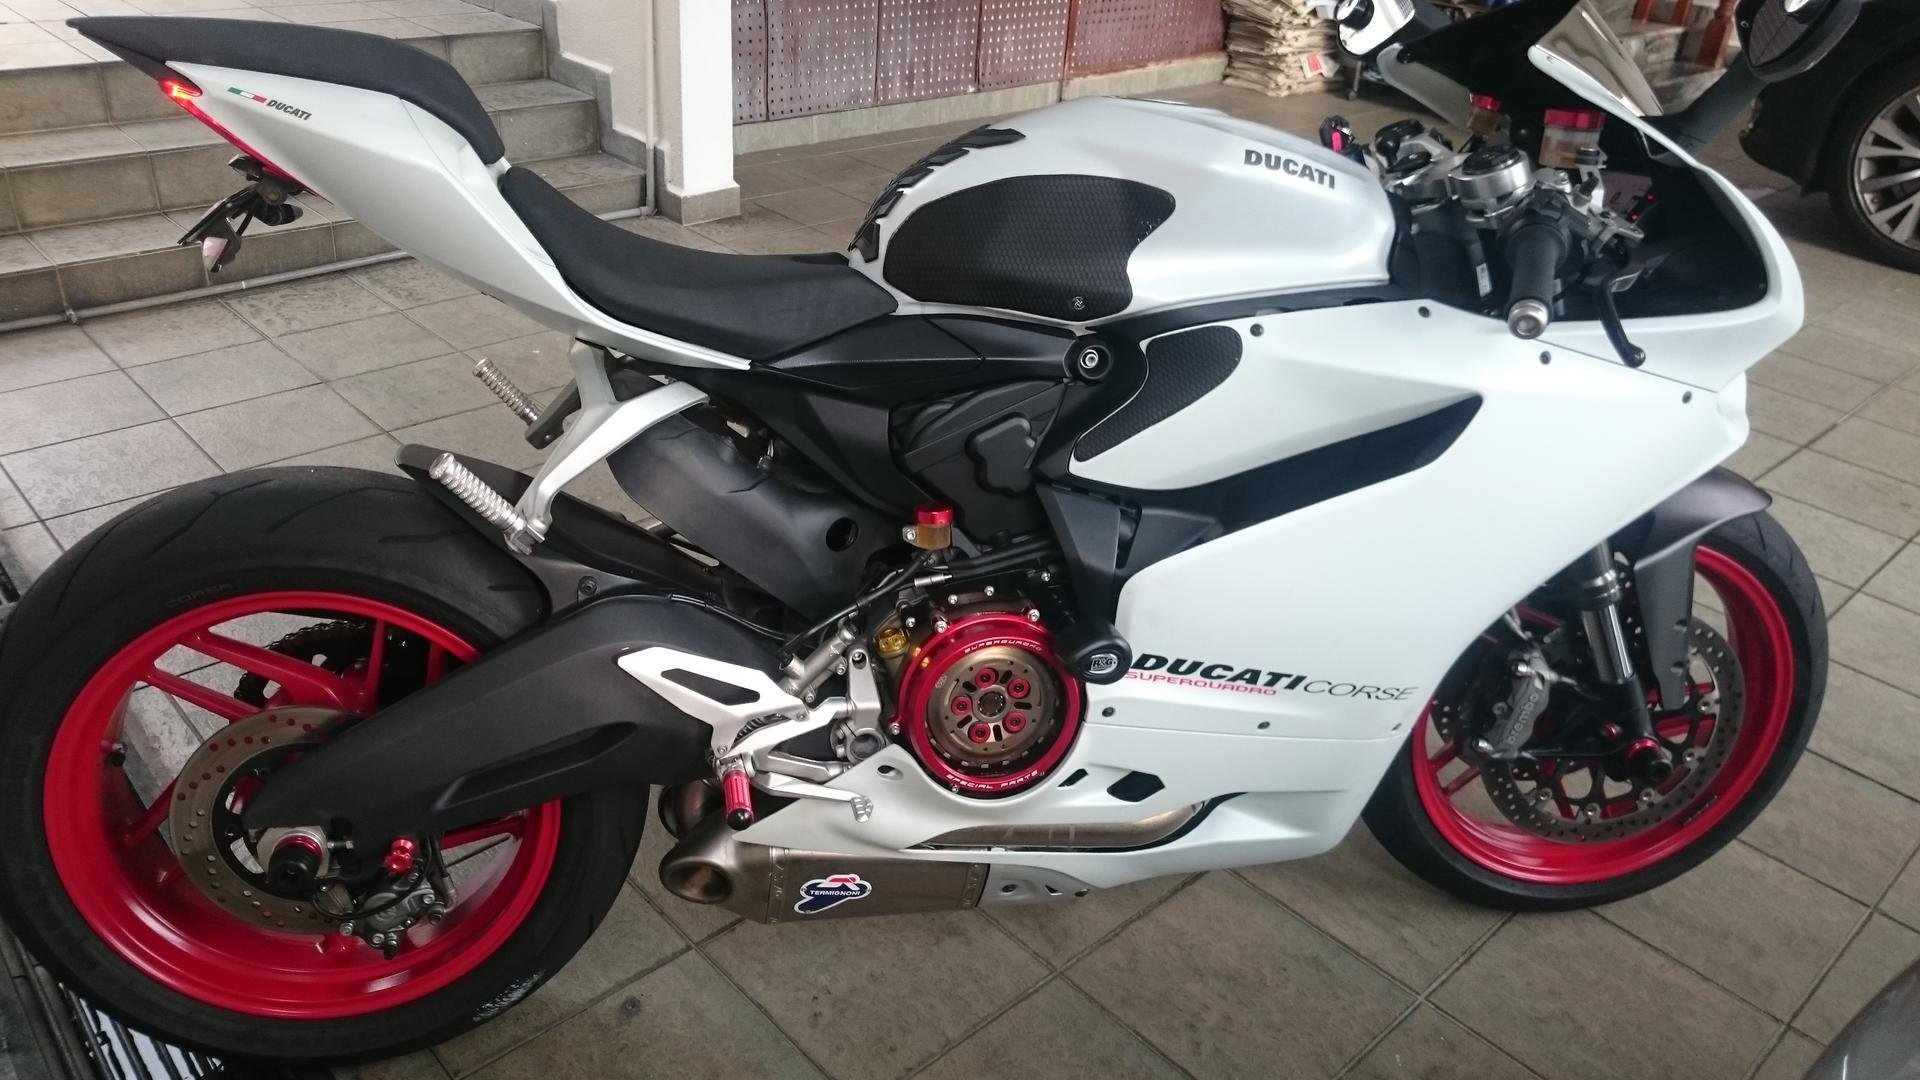 arctic white silk ducati 899 panigale picture thread page 26 ducati 899 panigale forum. Black Bedroom Furniture Sets. Home Design Ideas